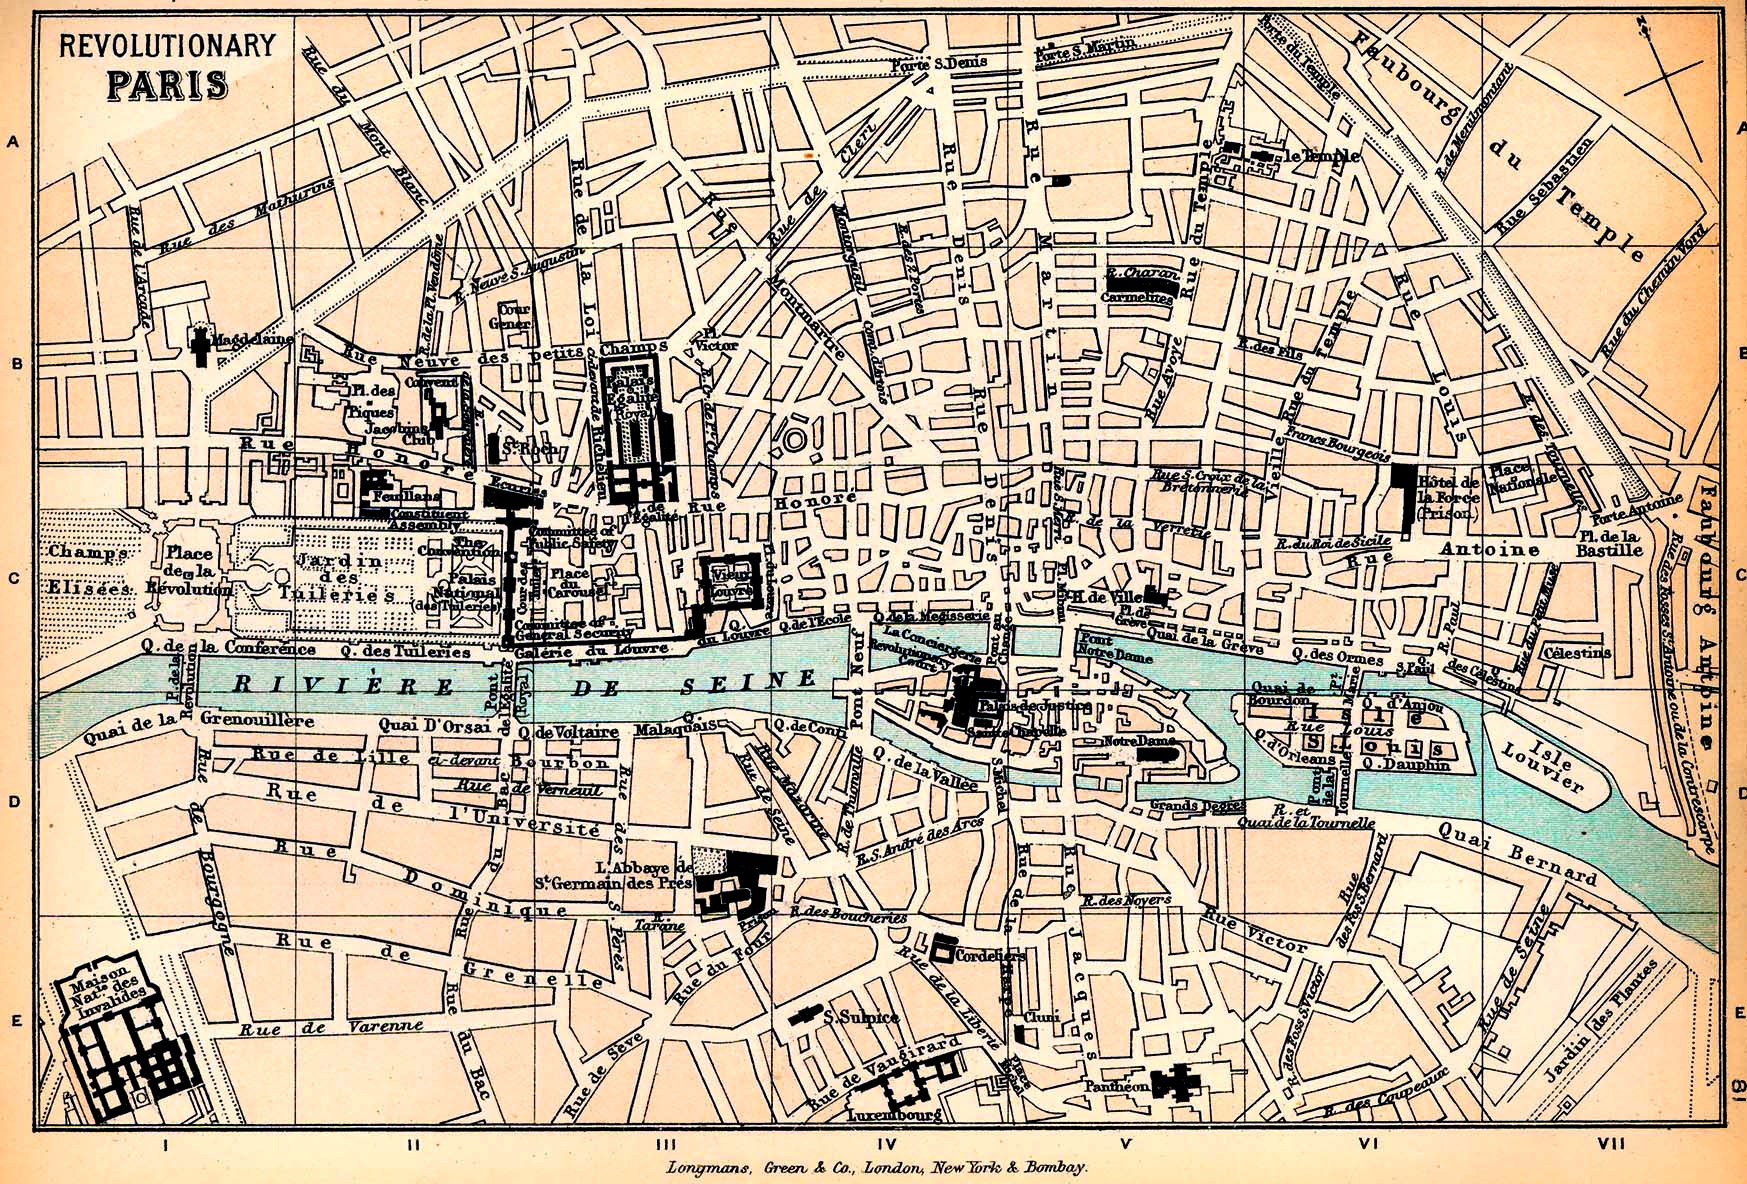 Map of Revolutionary Paris 1789